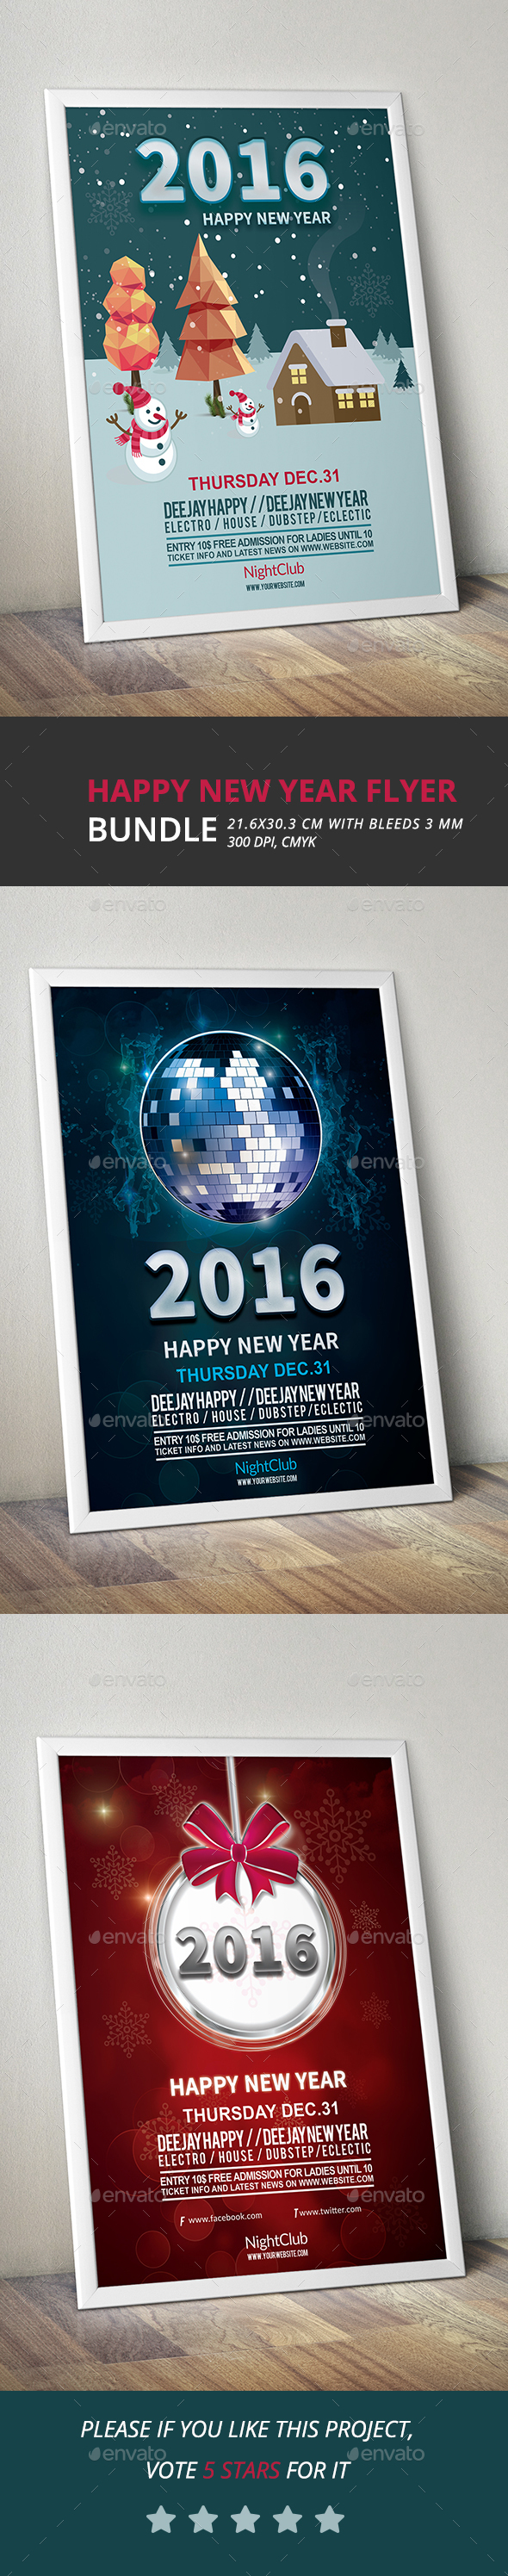 Happy New Year Flyers Bundle 2016 - Clubs & Parties Events